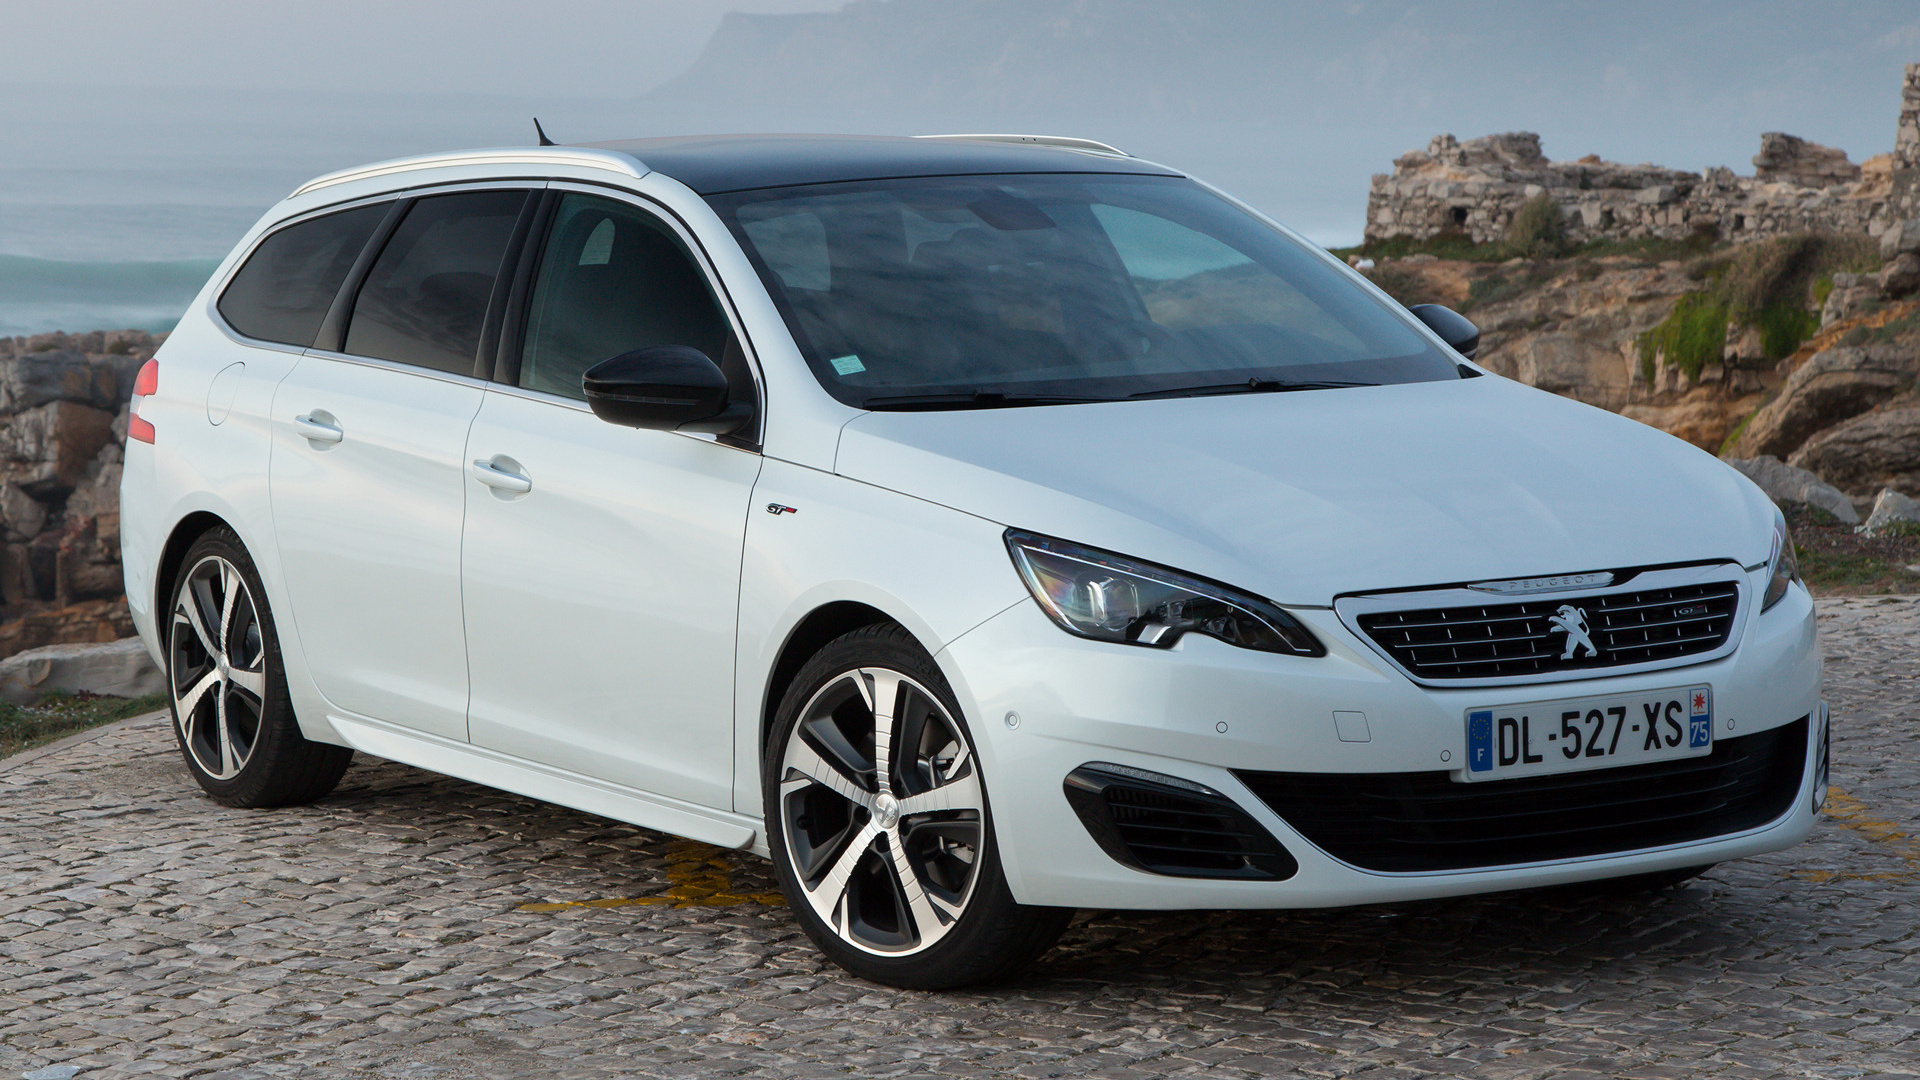 peugeot 308 gt sw 2014 wallpapers and hd images car pixel. Black Bedroom Furniture Sets. Home Design Ideas